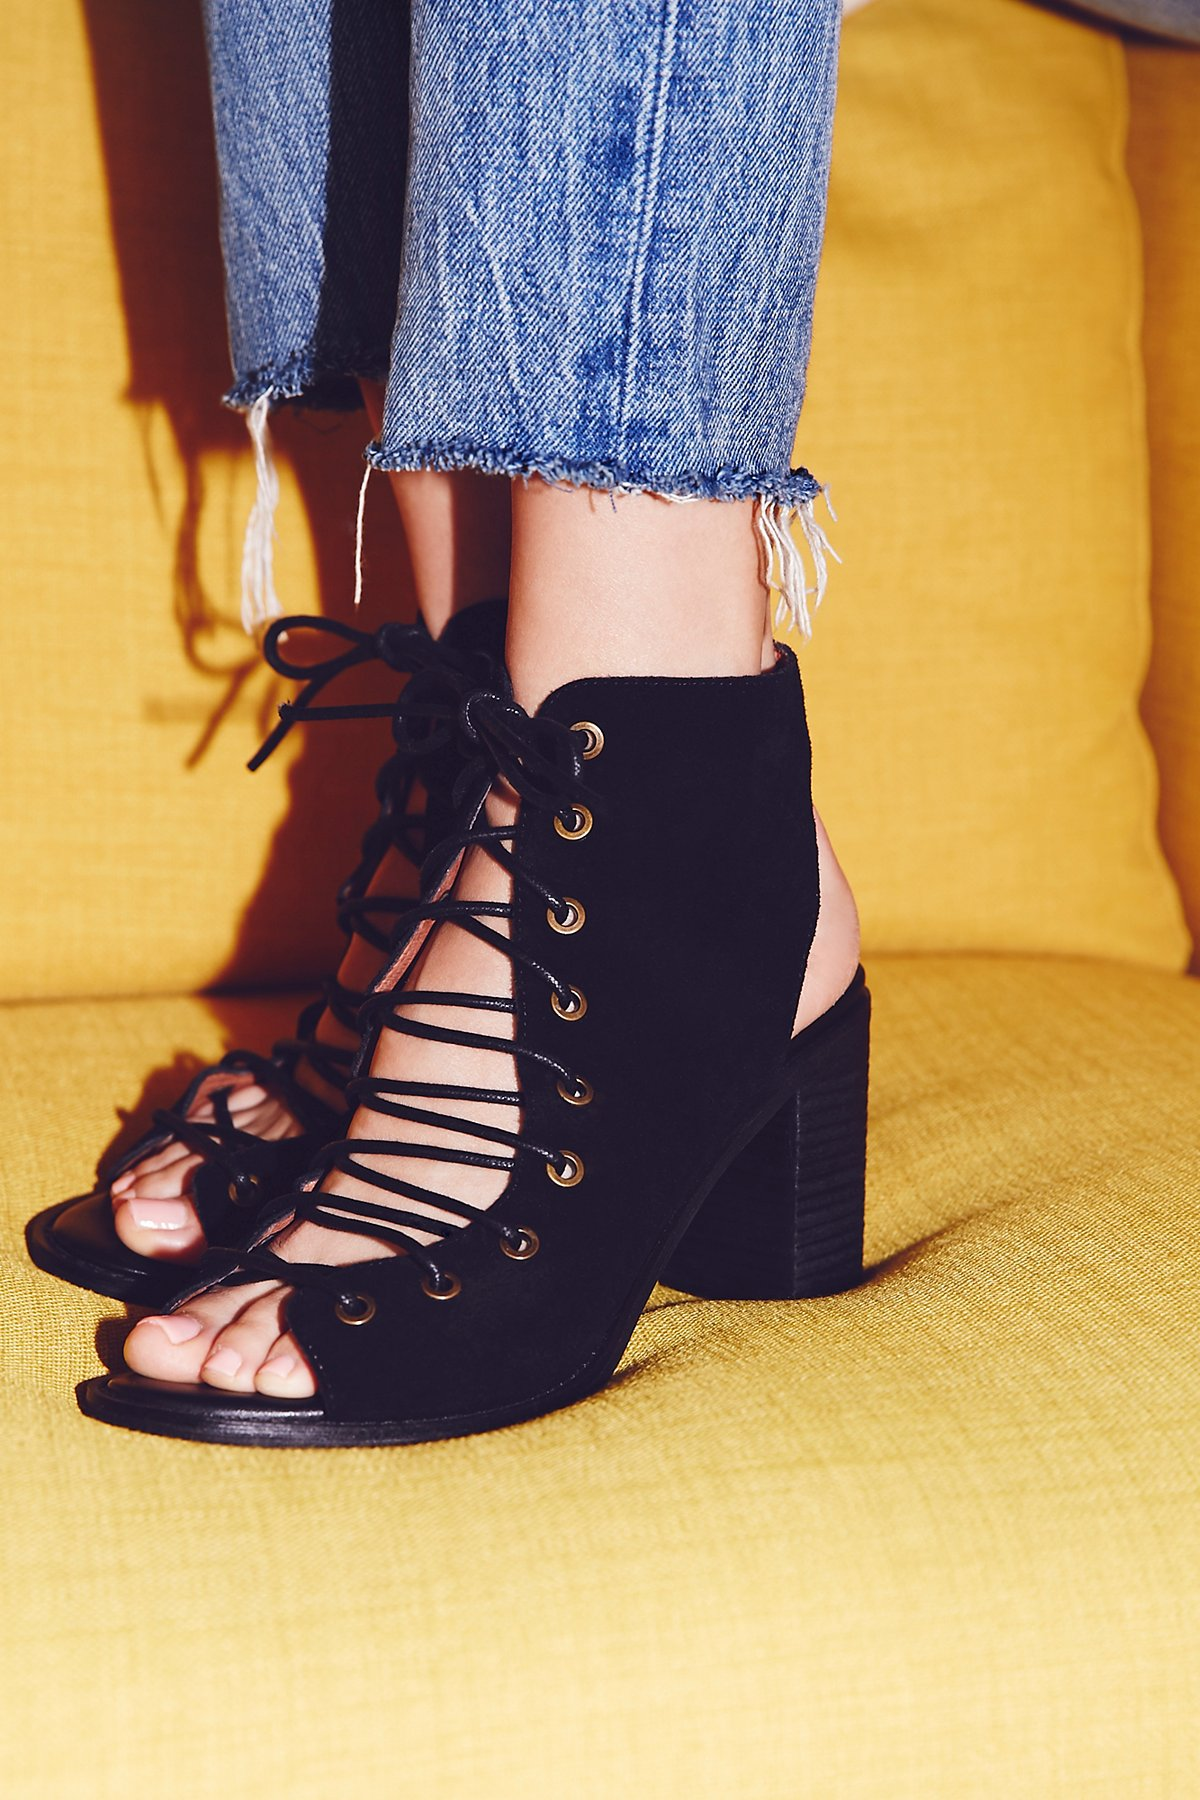 Jeffrey Campbell X Free People Minimal Lace Up Heel At